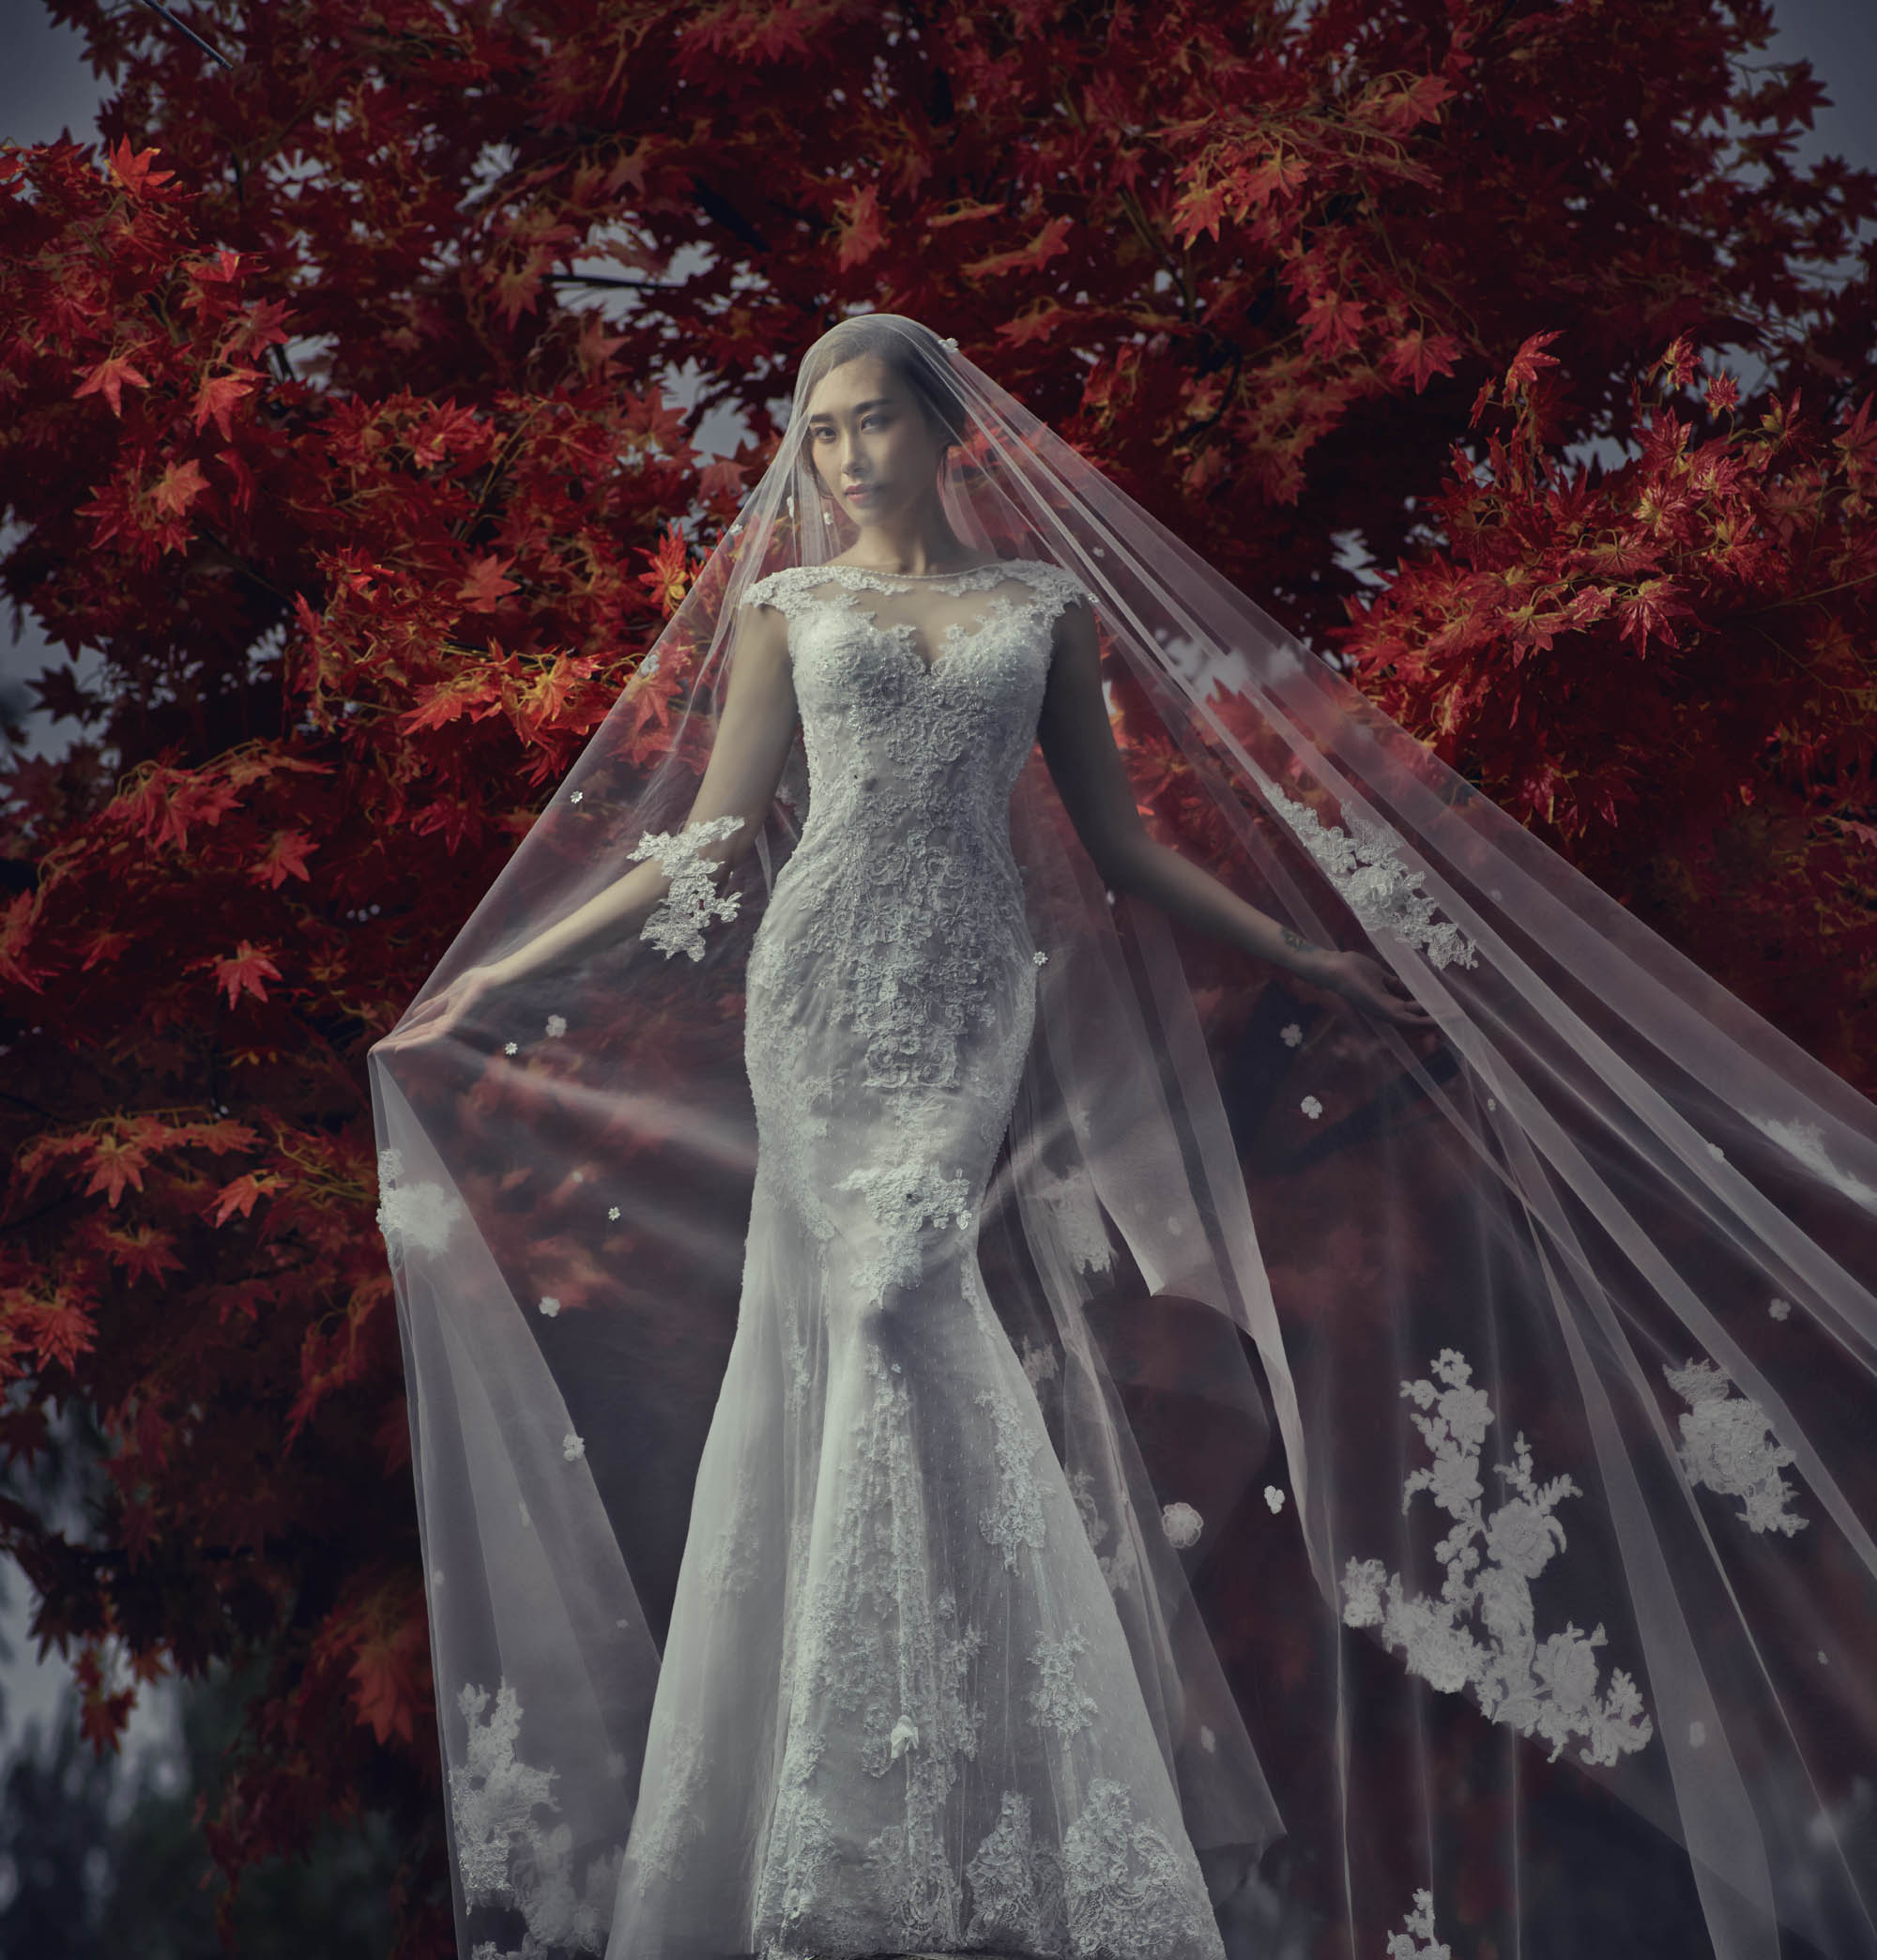 bride-in-full-length-veil-against-fall-leaves-worlds-best-wedding-photos-cm-leung-china-wedding-photographers